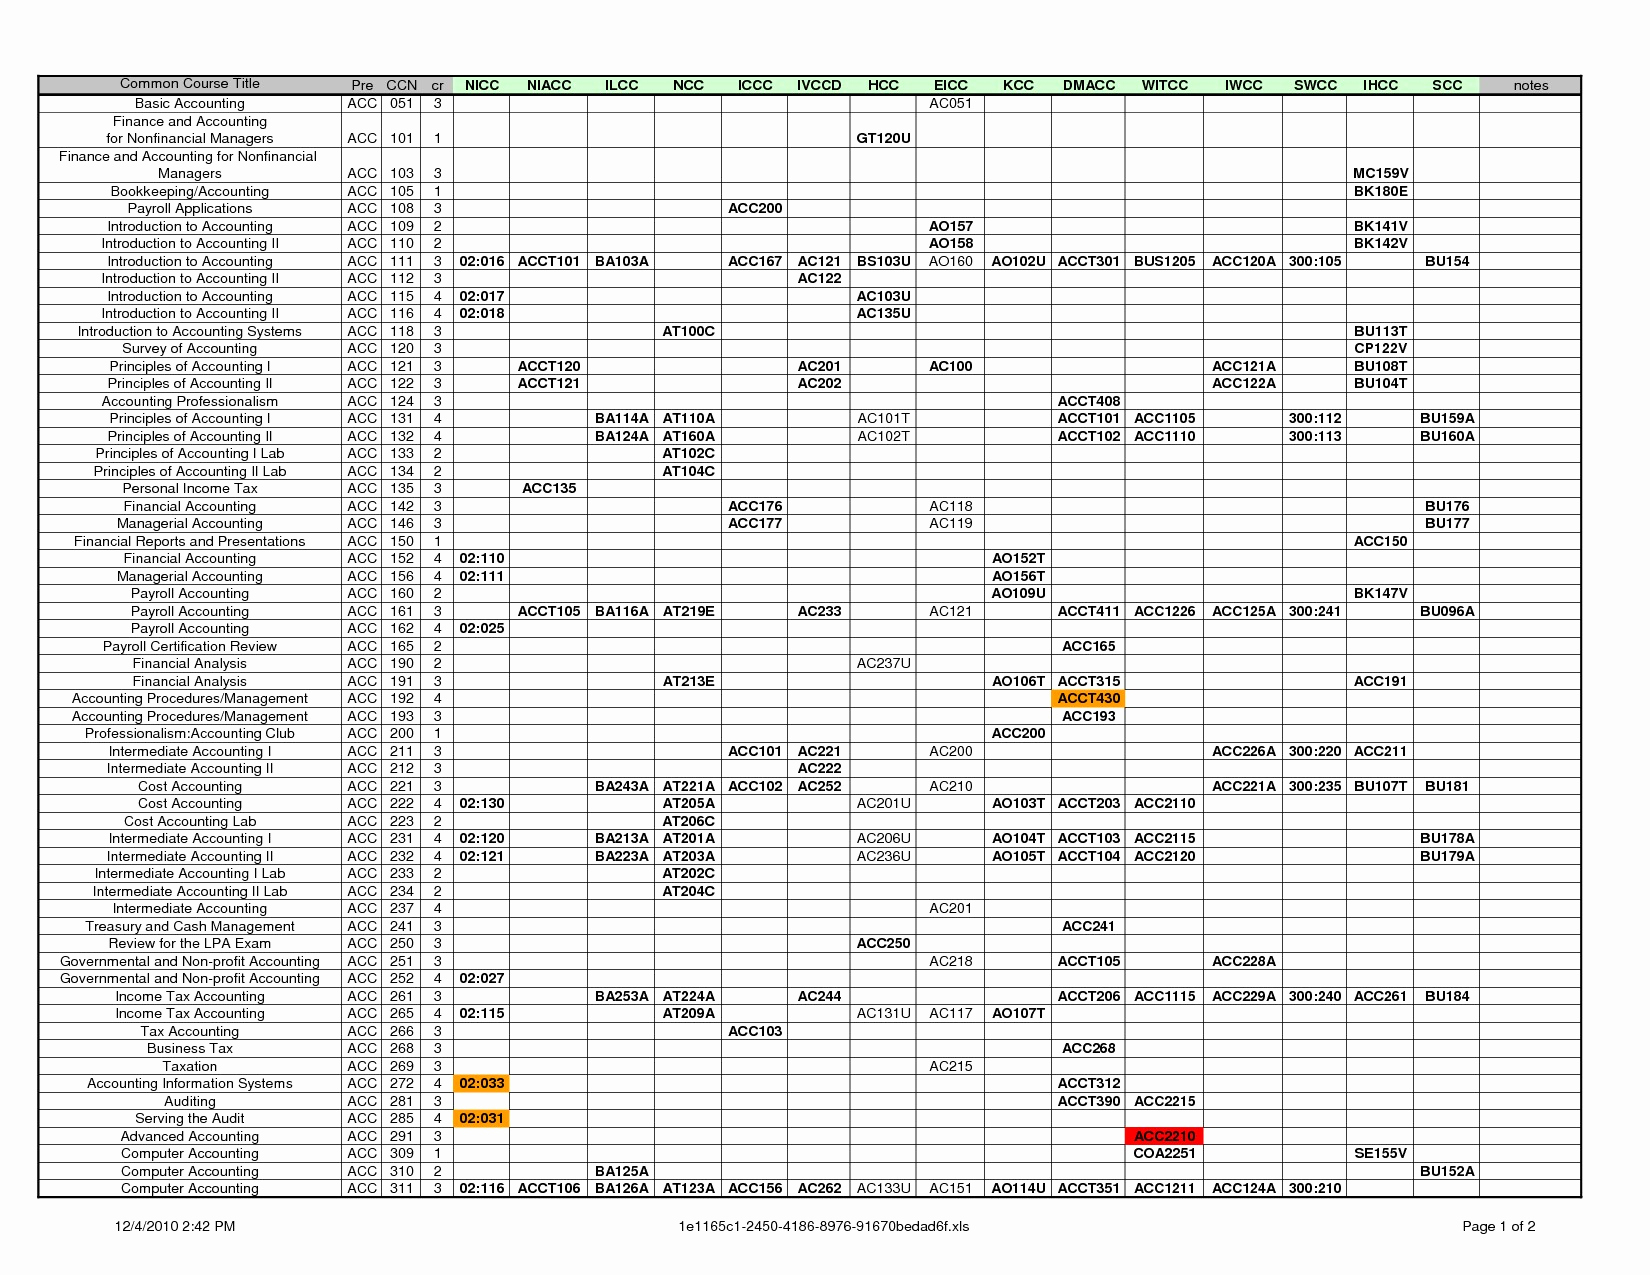 Bookkeeping Spreadsheet Using Microsoft Excel Lovely Bookkeeping For In Contractor Bookkeeping Spreadsheet